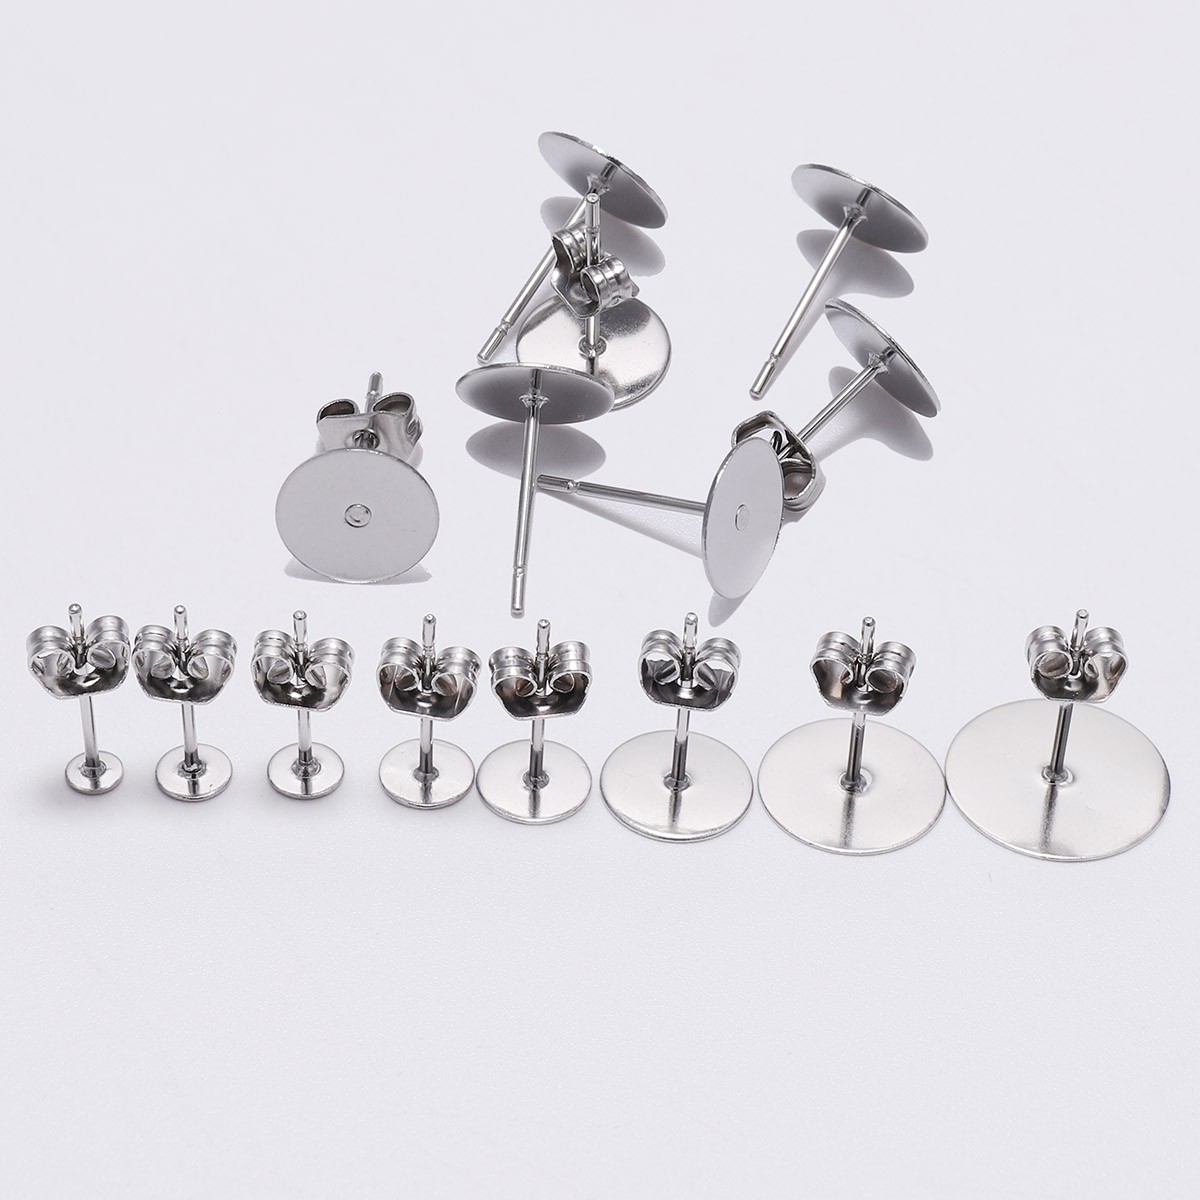 100pcs/lot 3 4 5 6 8 10 12mm Stainless Steel Blank Post Earring Stud Base Pins With Earring Plug Supplies For DIY Jewelry Making